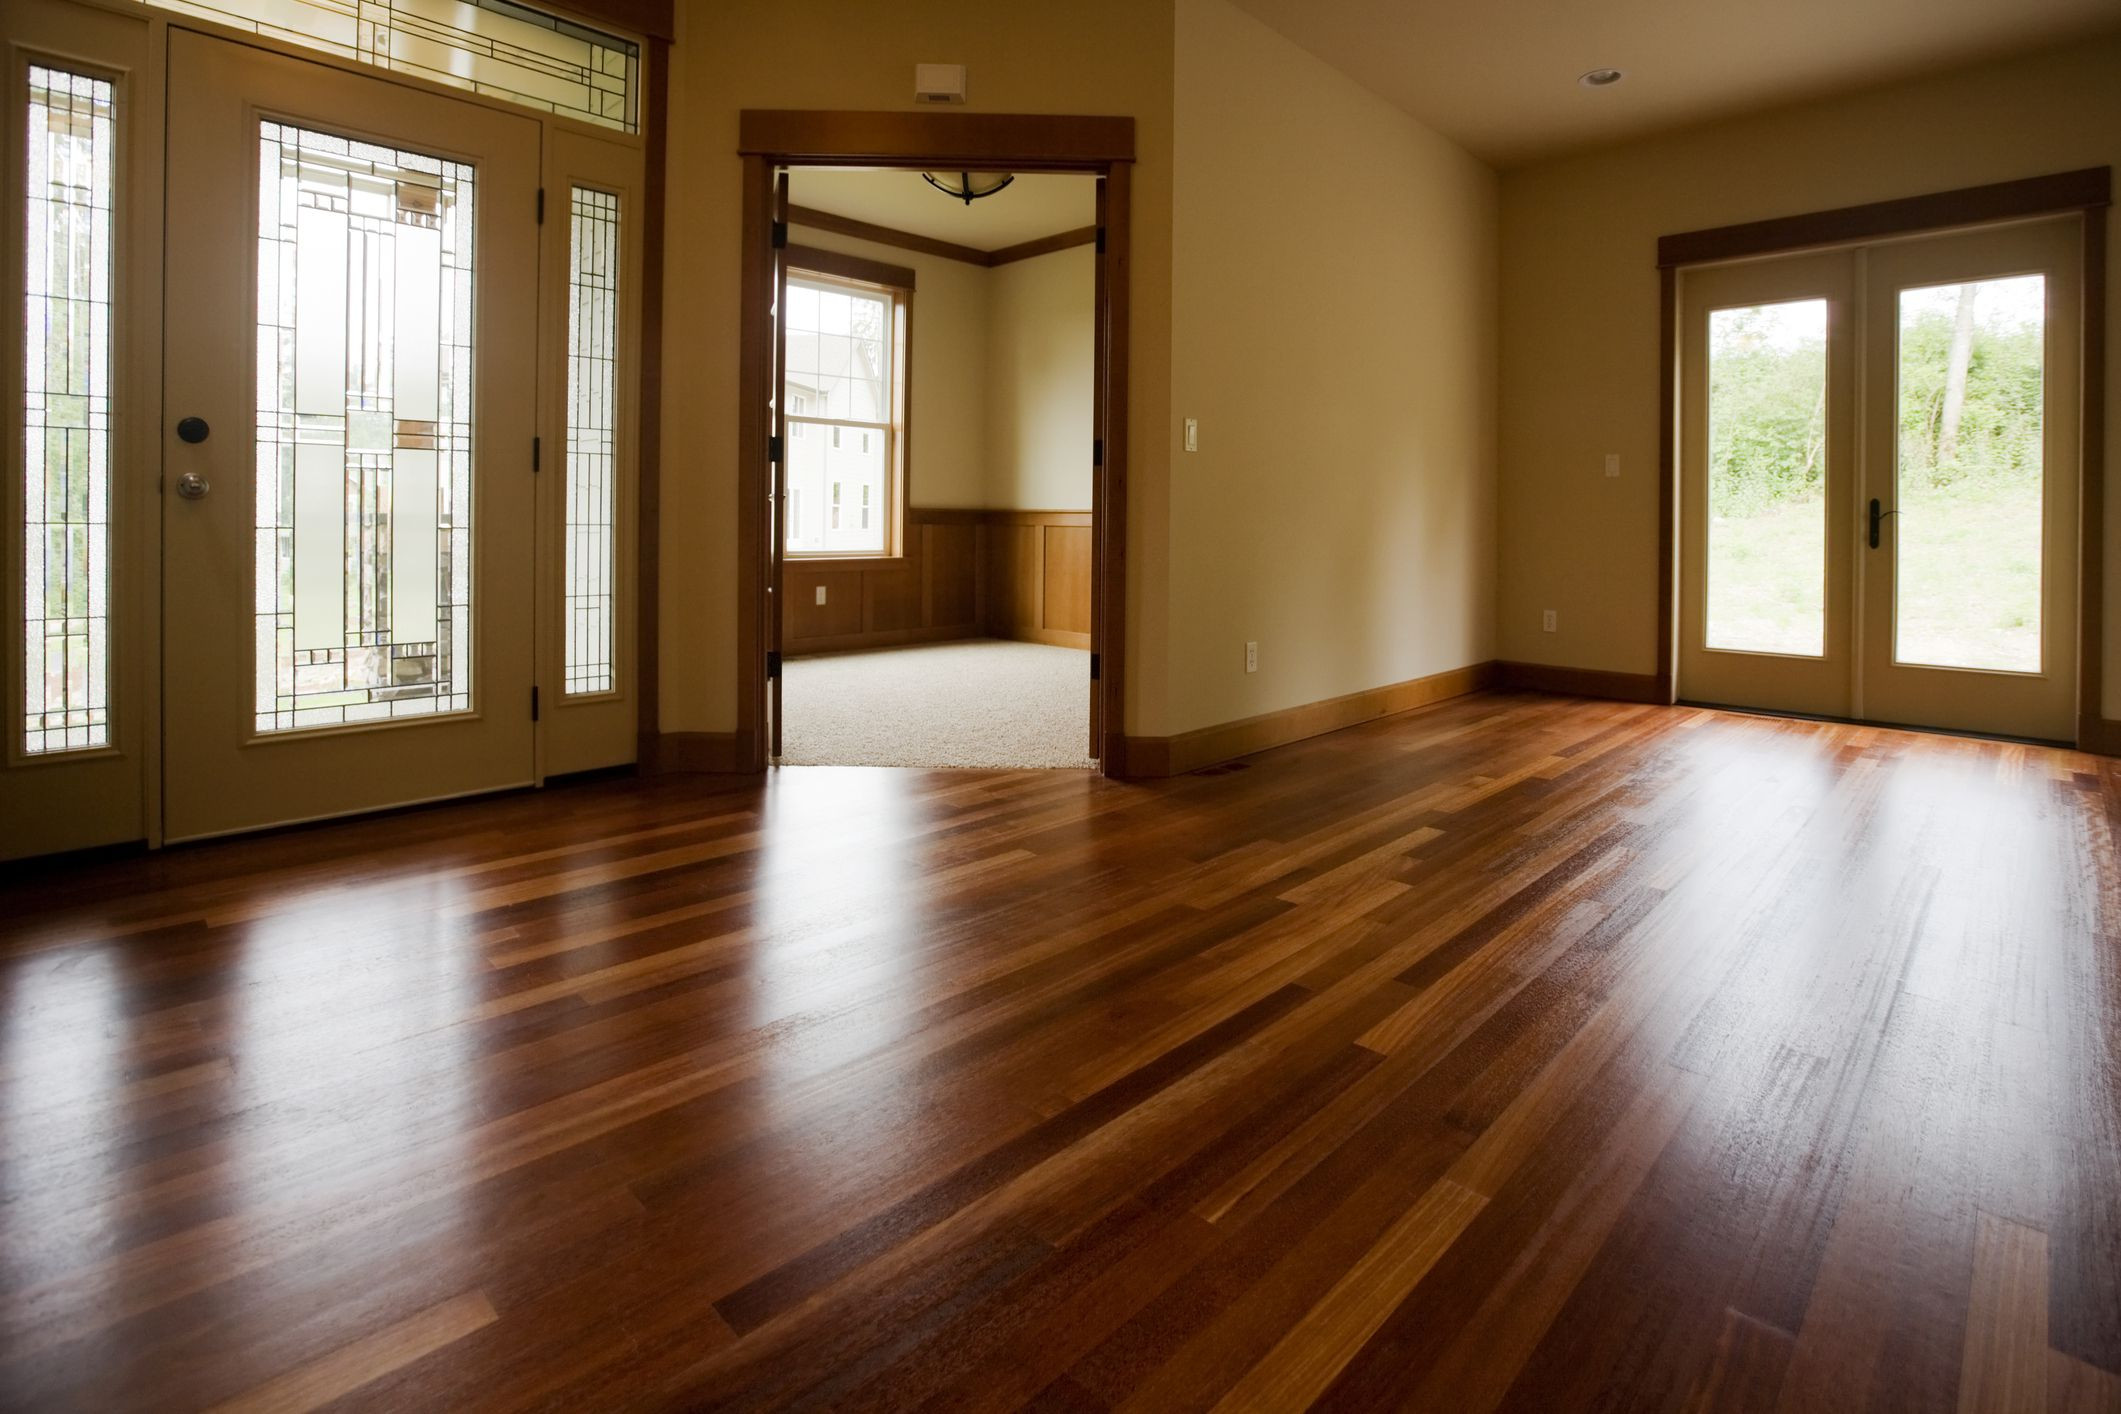 bruce solid maple hardwood flooring of types of hardwood flooring buyers guide for gettyimages 157332889 5886d8383df78c2ccd65d4e1